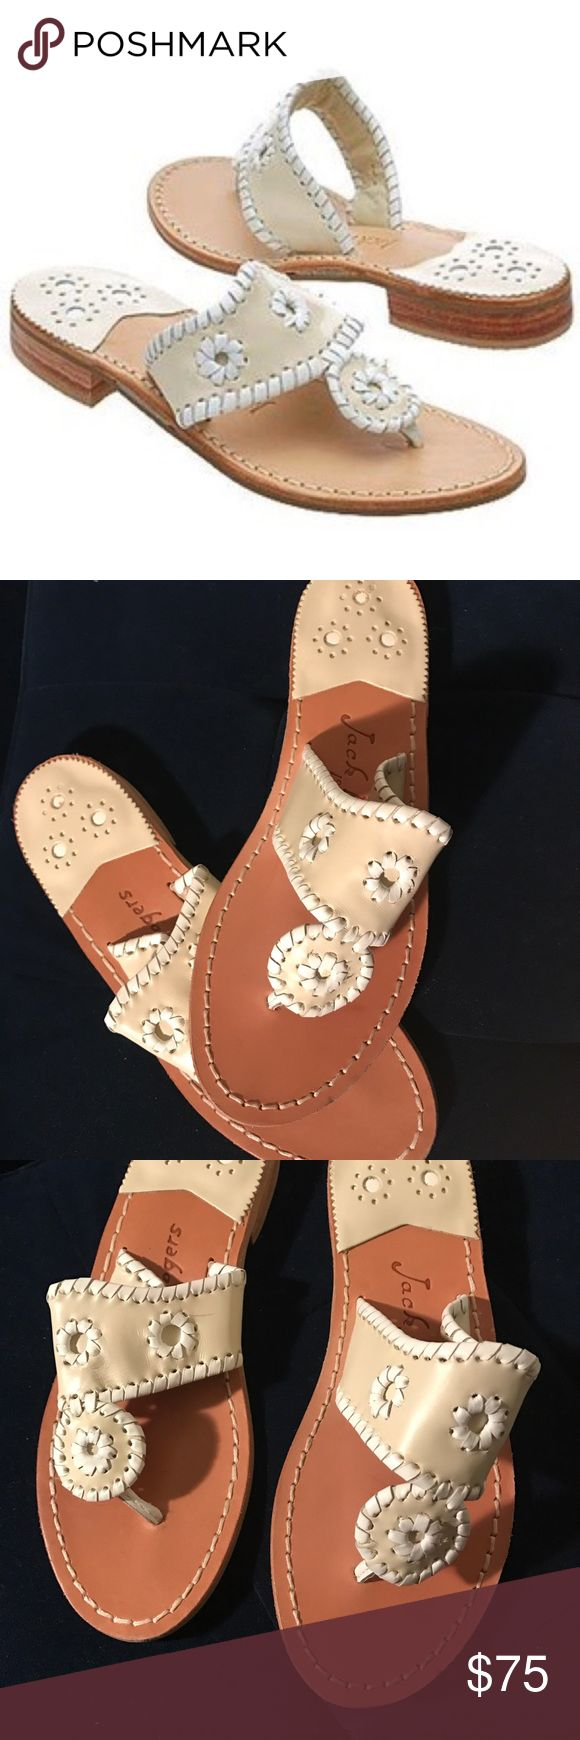 Palm beach bone and tan by jack rogers sandals Size 6M brand new no box Jack Rogers Shoes Sandals